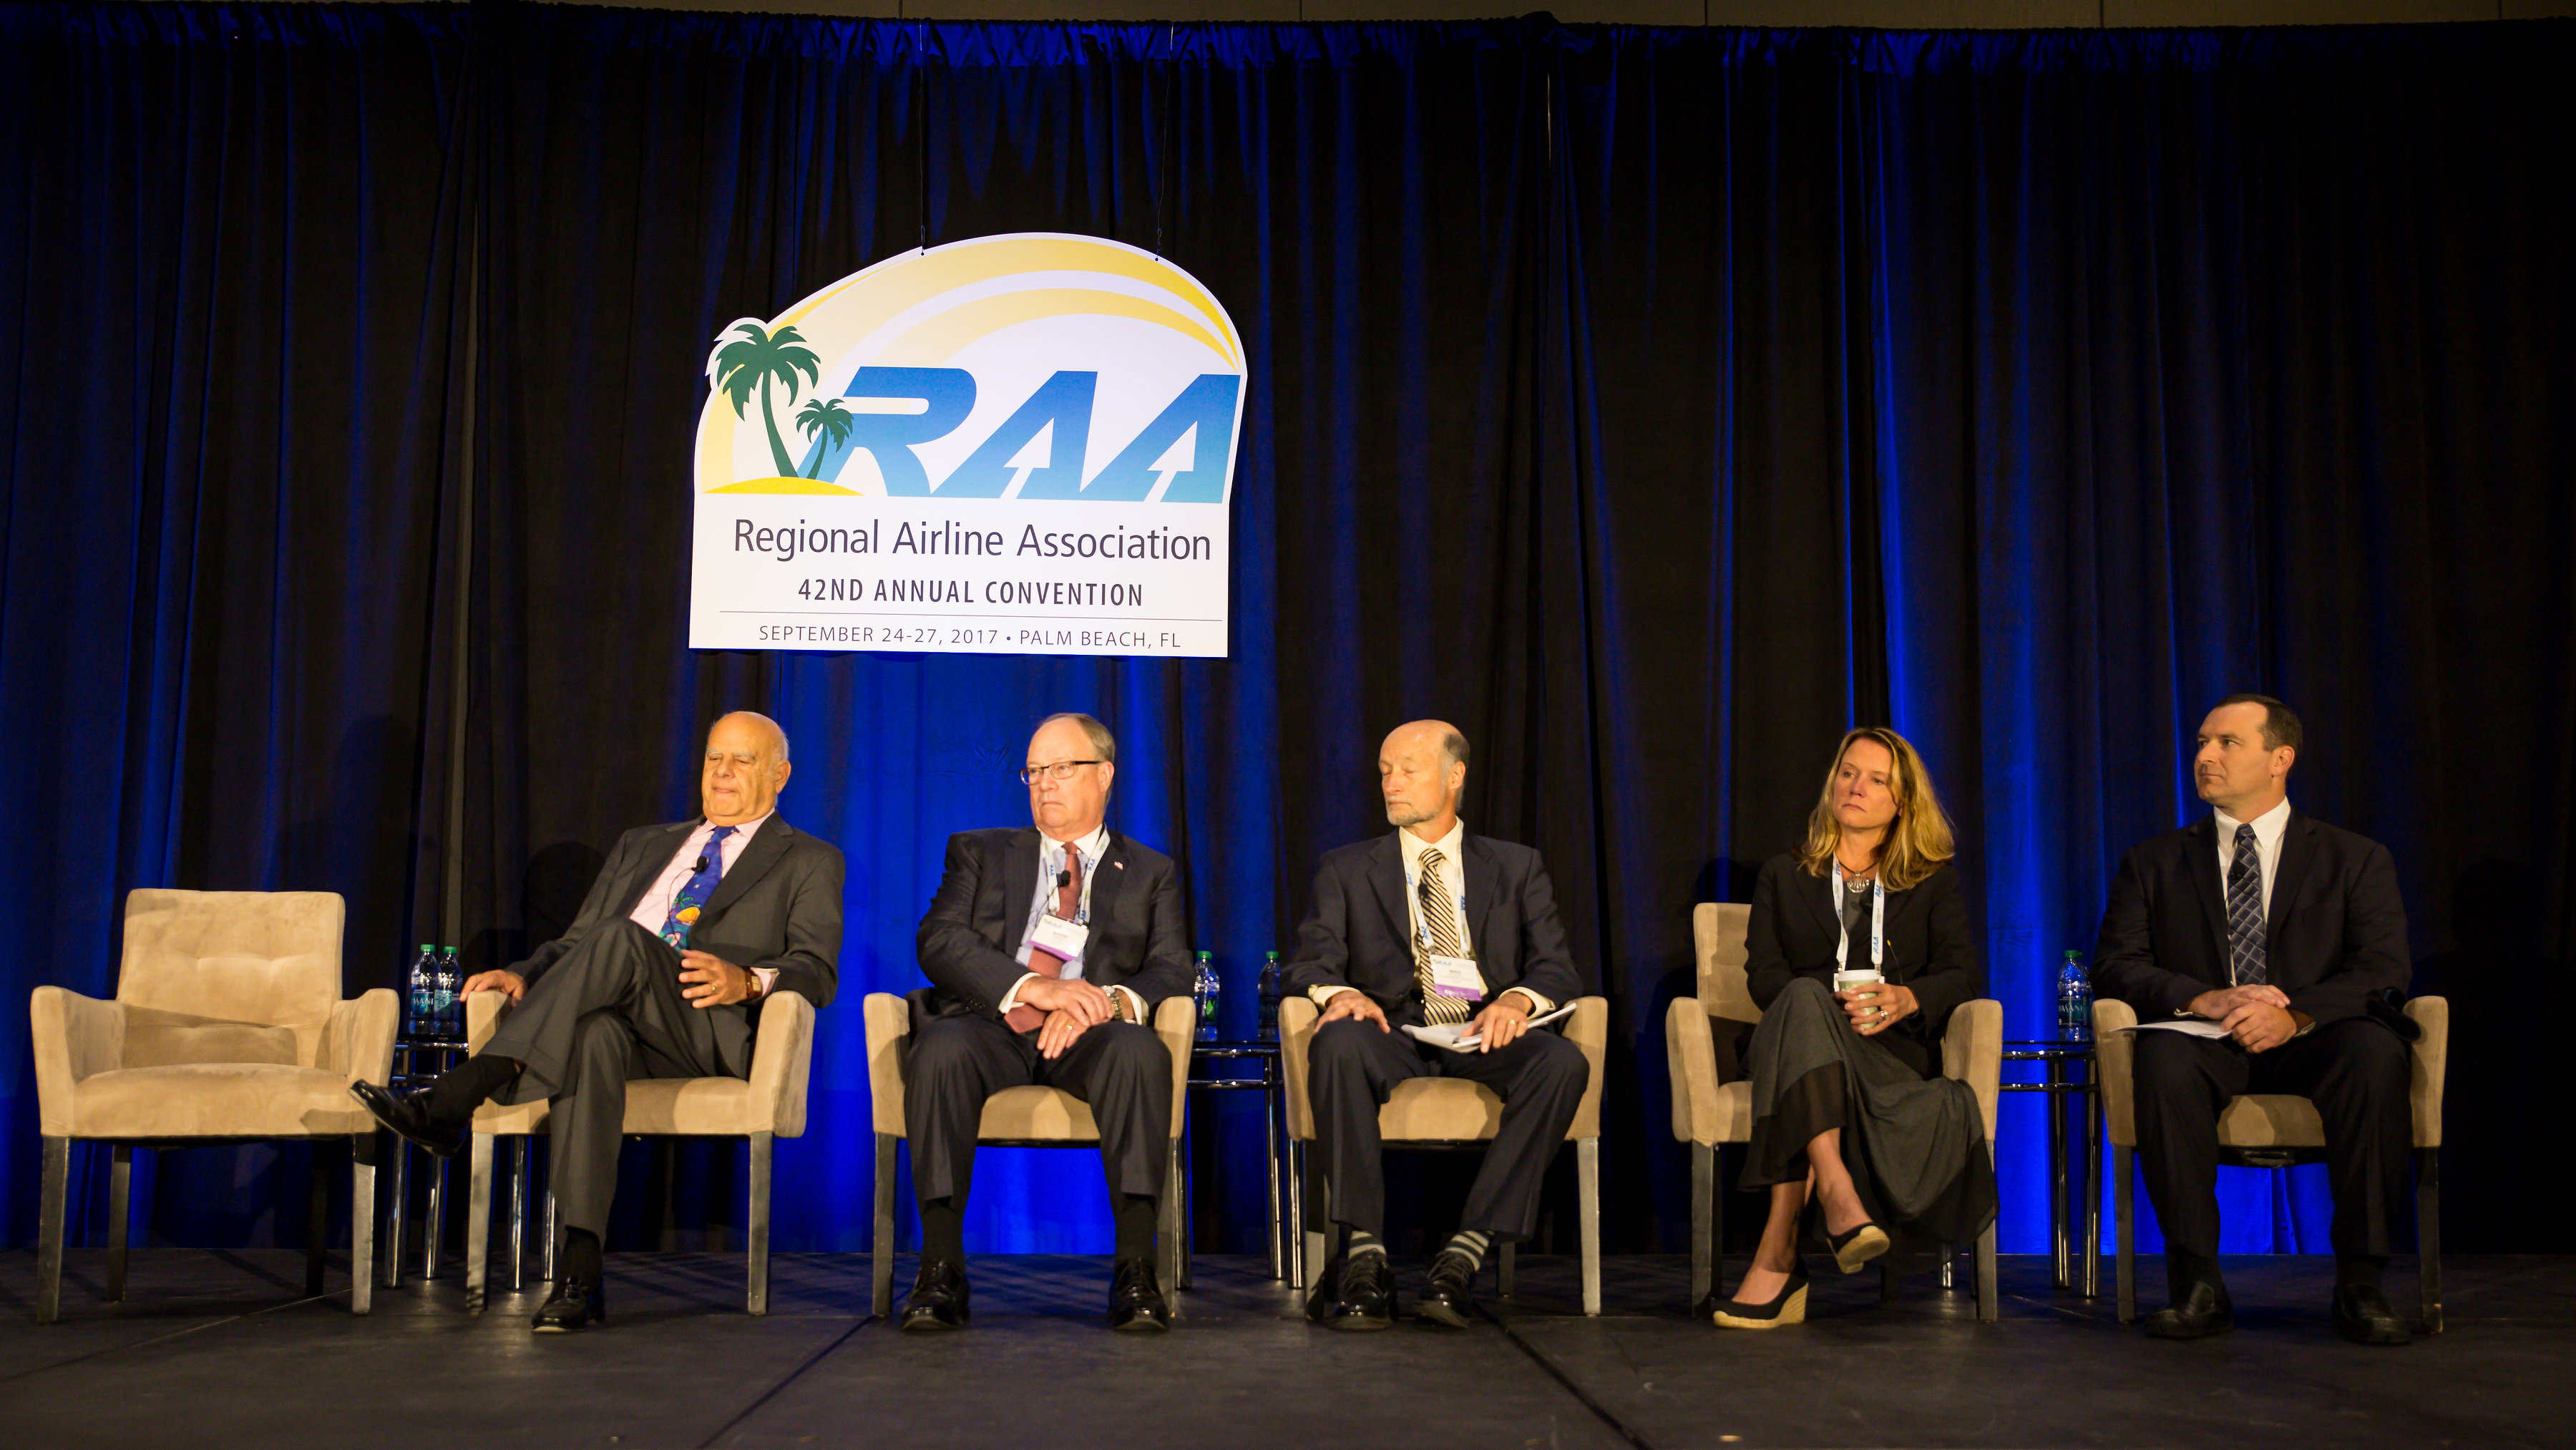 raa-conference-2017-coastal-click-photography-2520